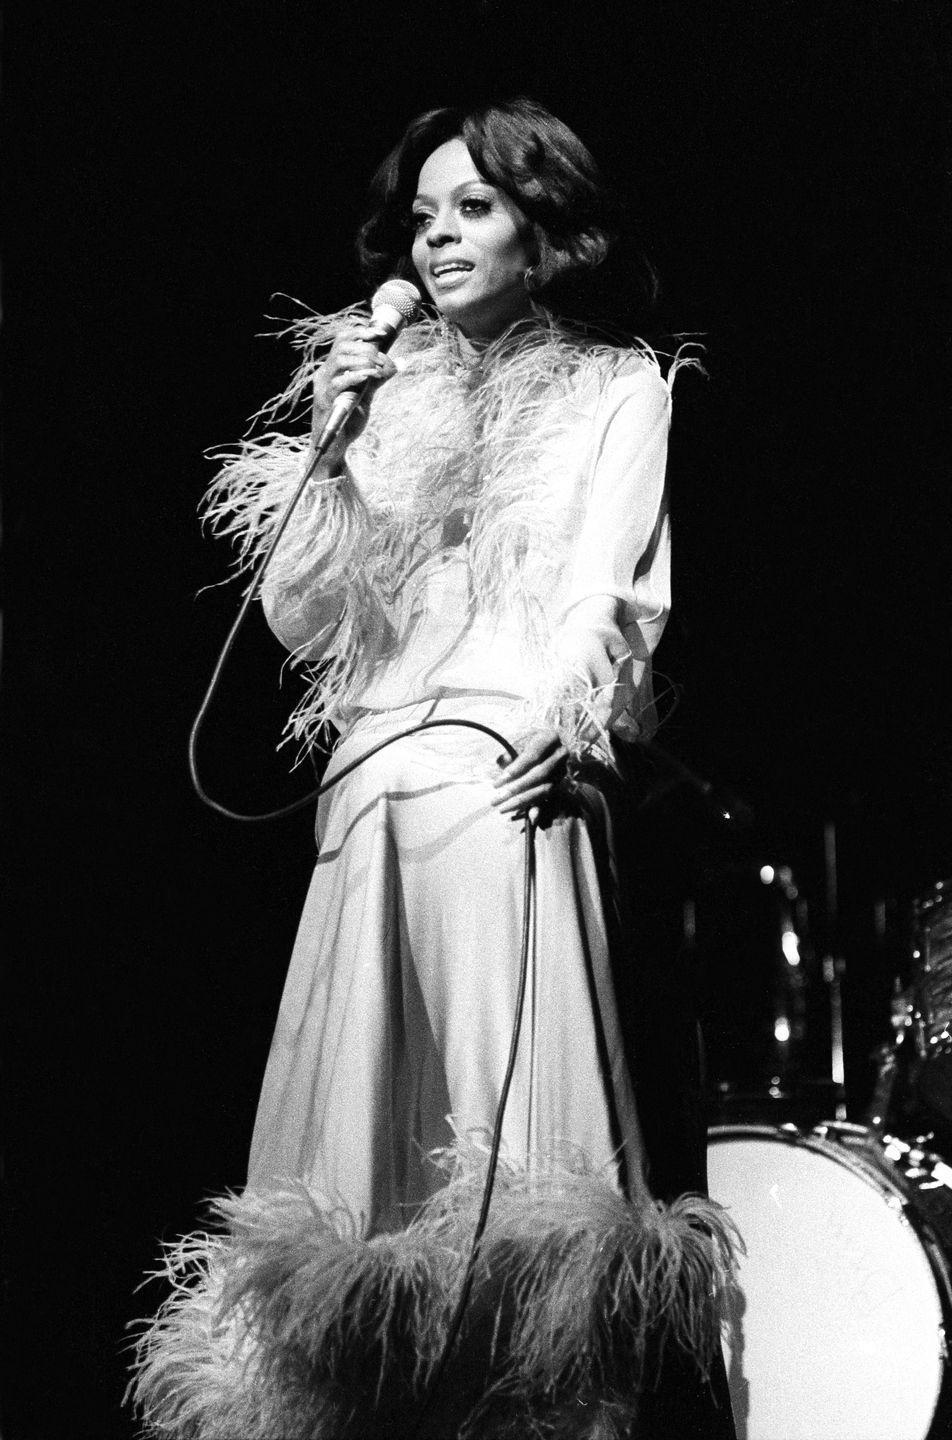 <p>Diana Ross is the epitome of '70s glam. If you're looking for a fun yet chic costume to impress your coworkers, you can't go wrong with a feathered robe or shawl slipped over a slinky slipdress, emulating the superstar in her prime.</p>